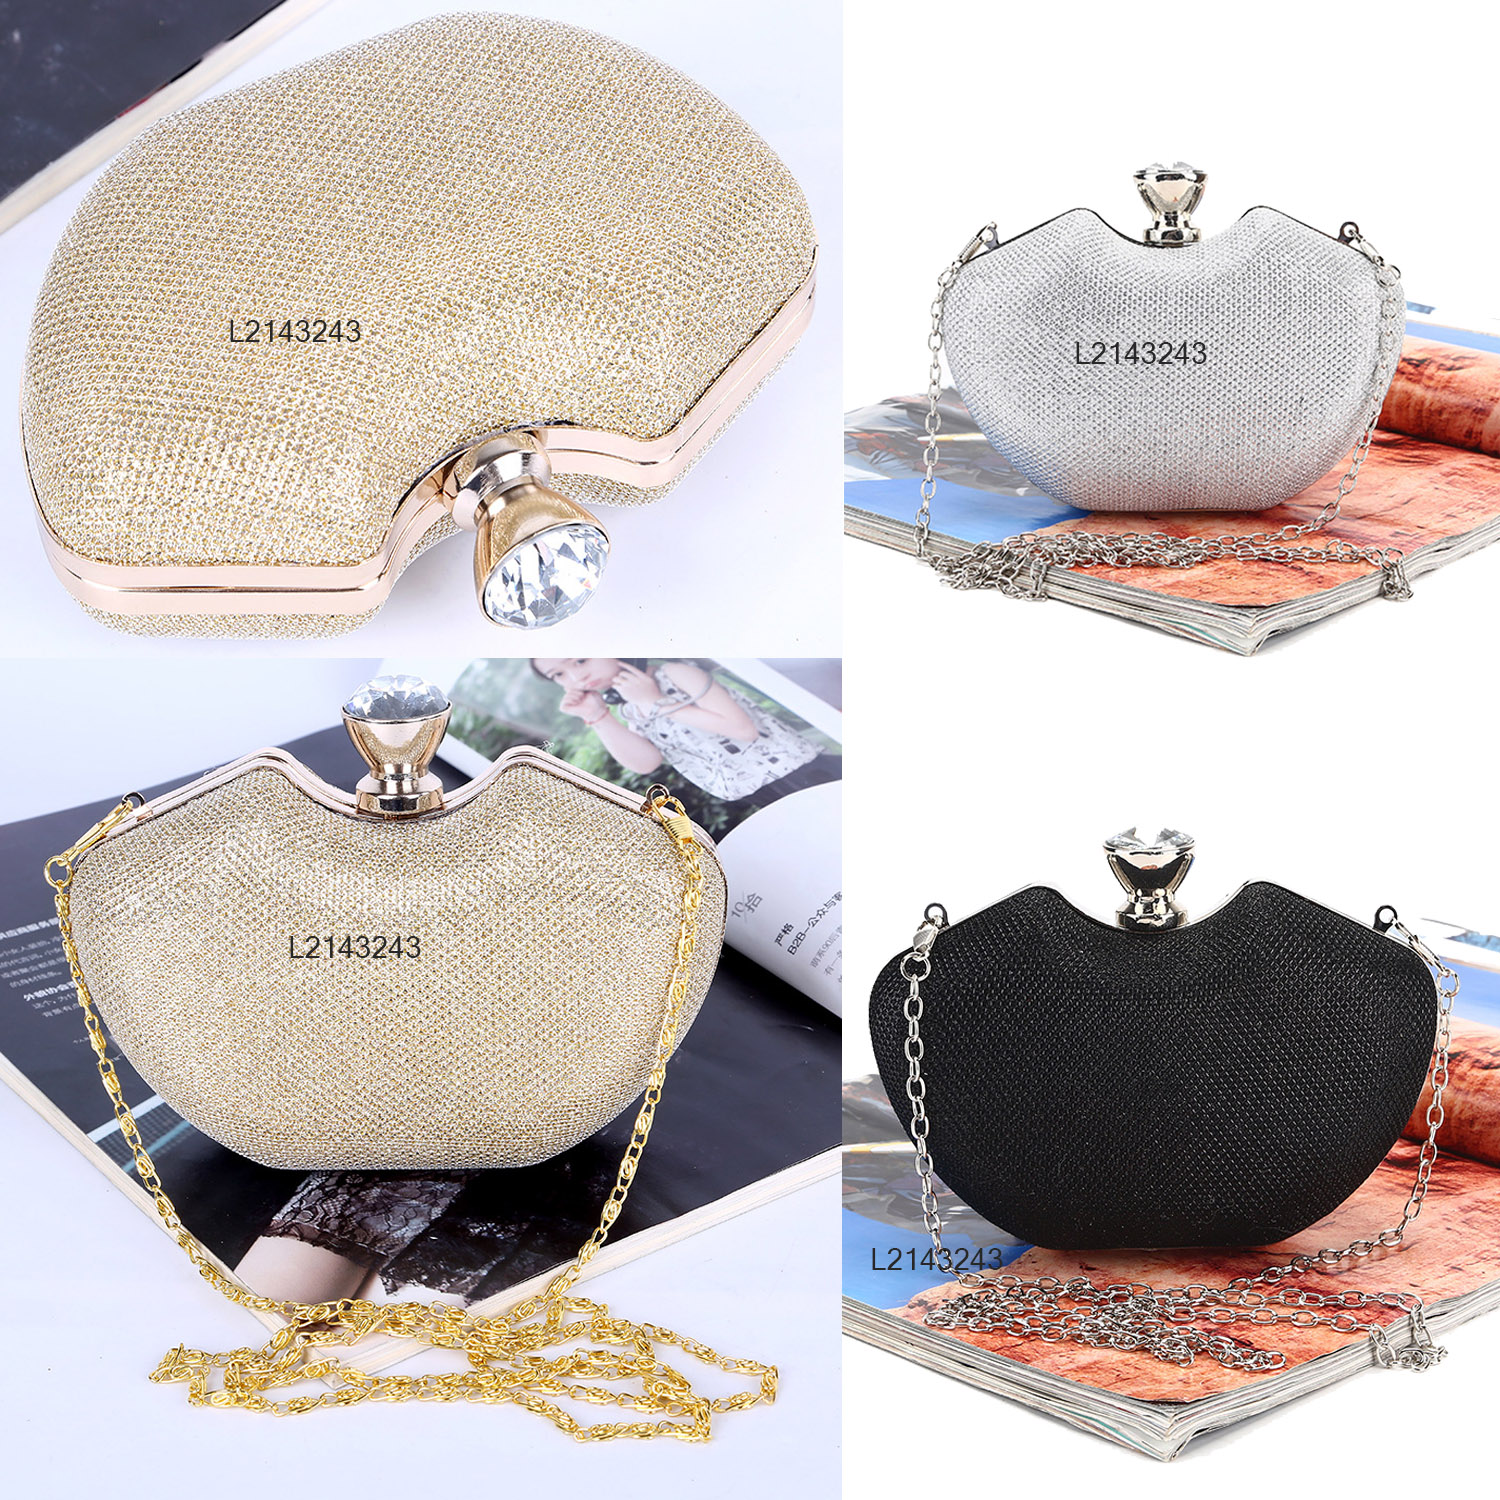 Details About Evening Handbags Jewelry Crystal Party Purse Bags Wedding Clutch Womens Handbag